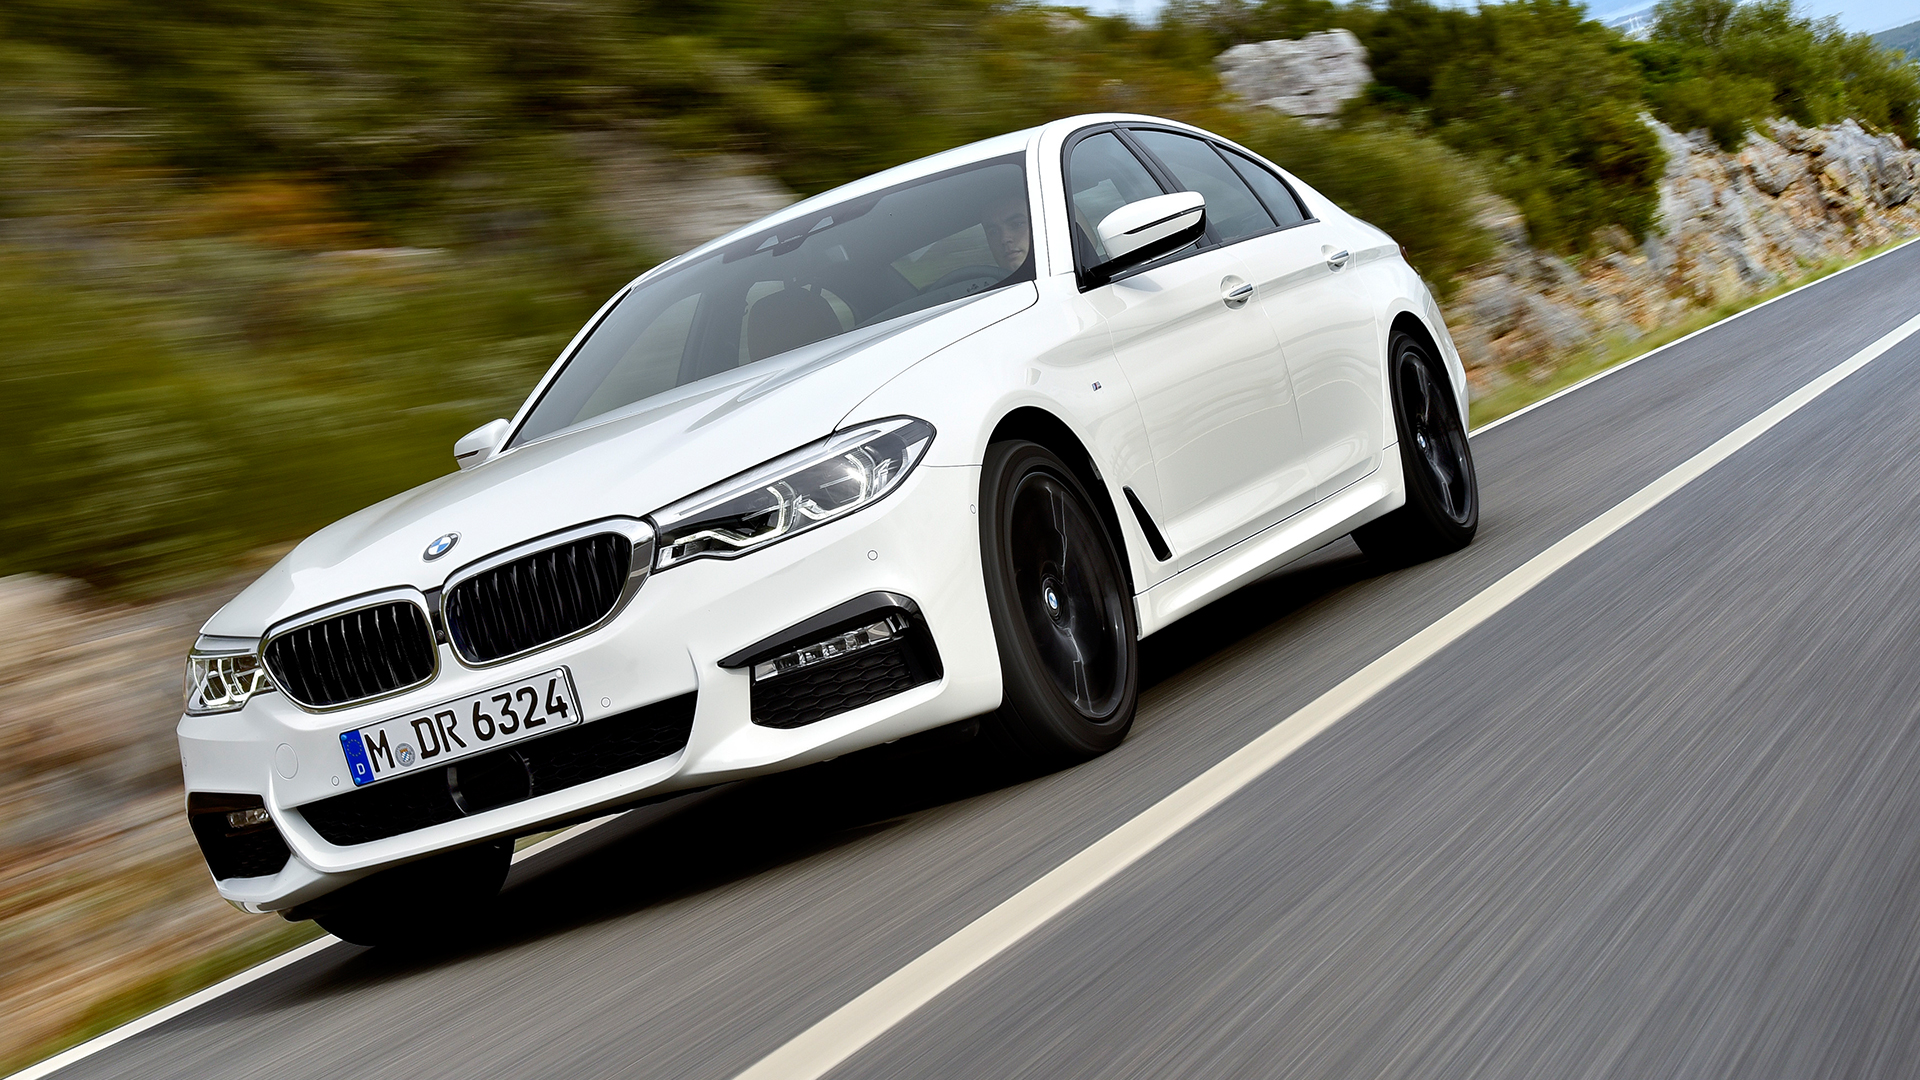 bmw 5 series 2017 price mileage reviews specification gallery overdrive. Black Bedroom Furniture Sets. Home Design Ideas